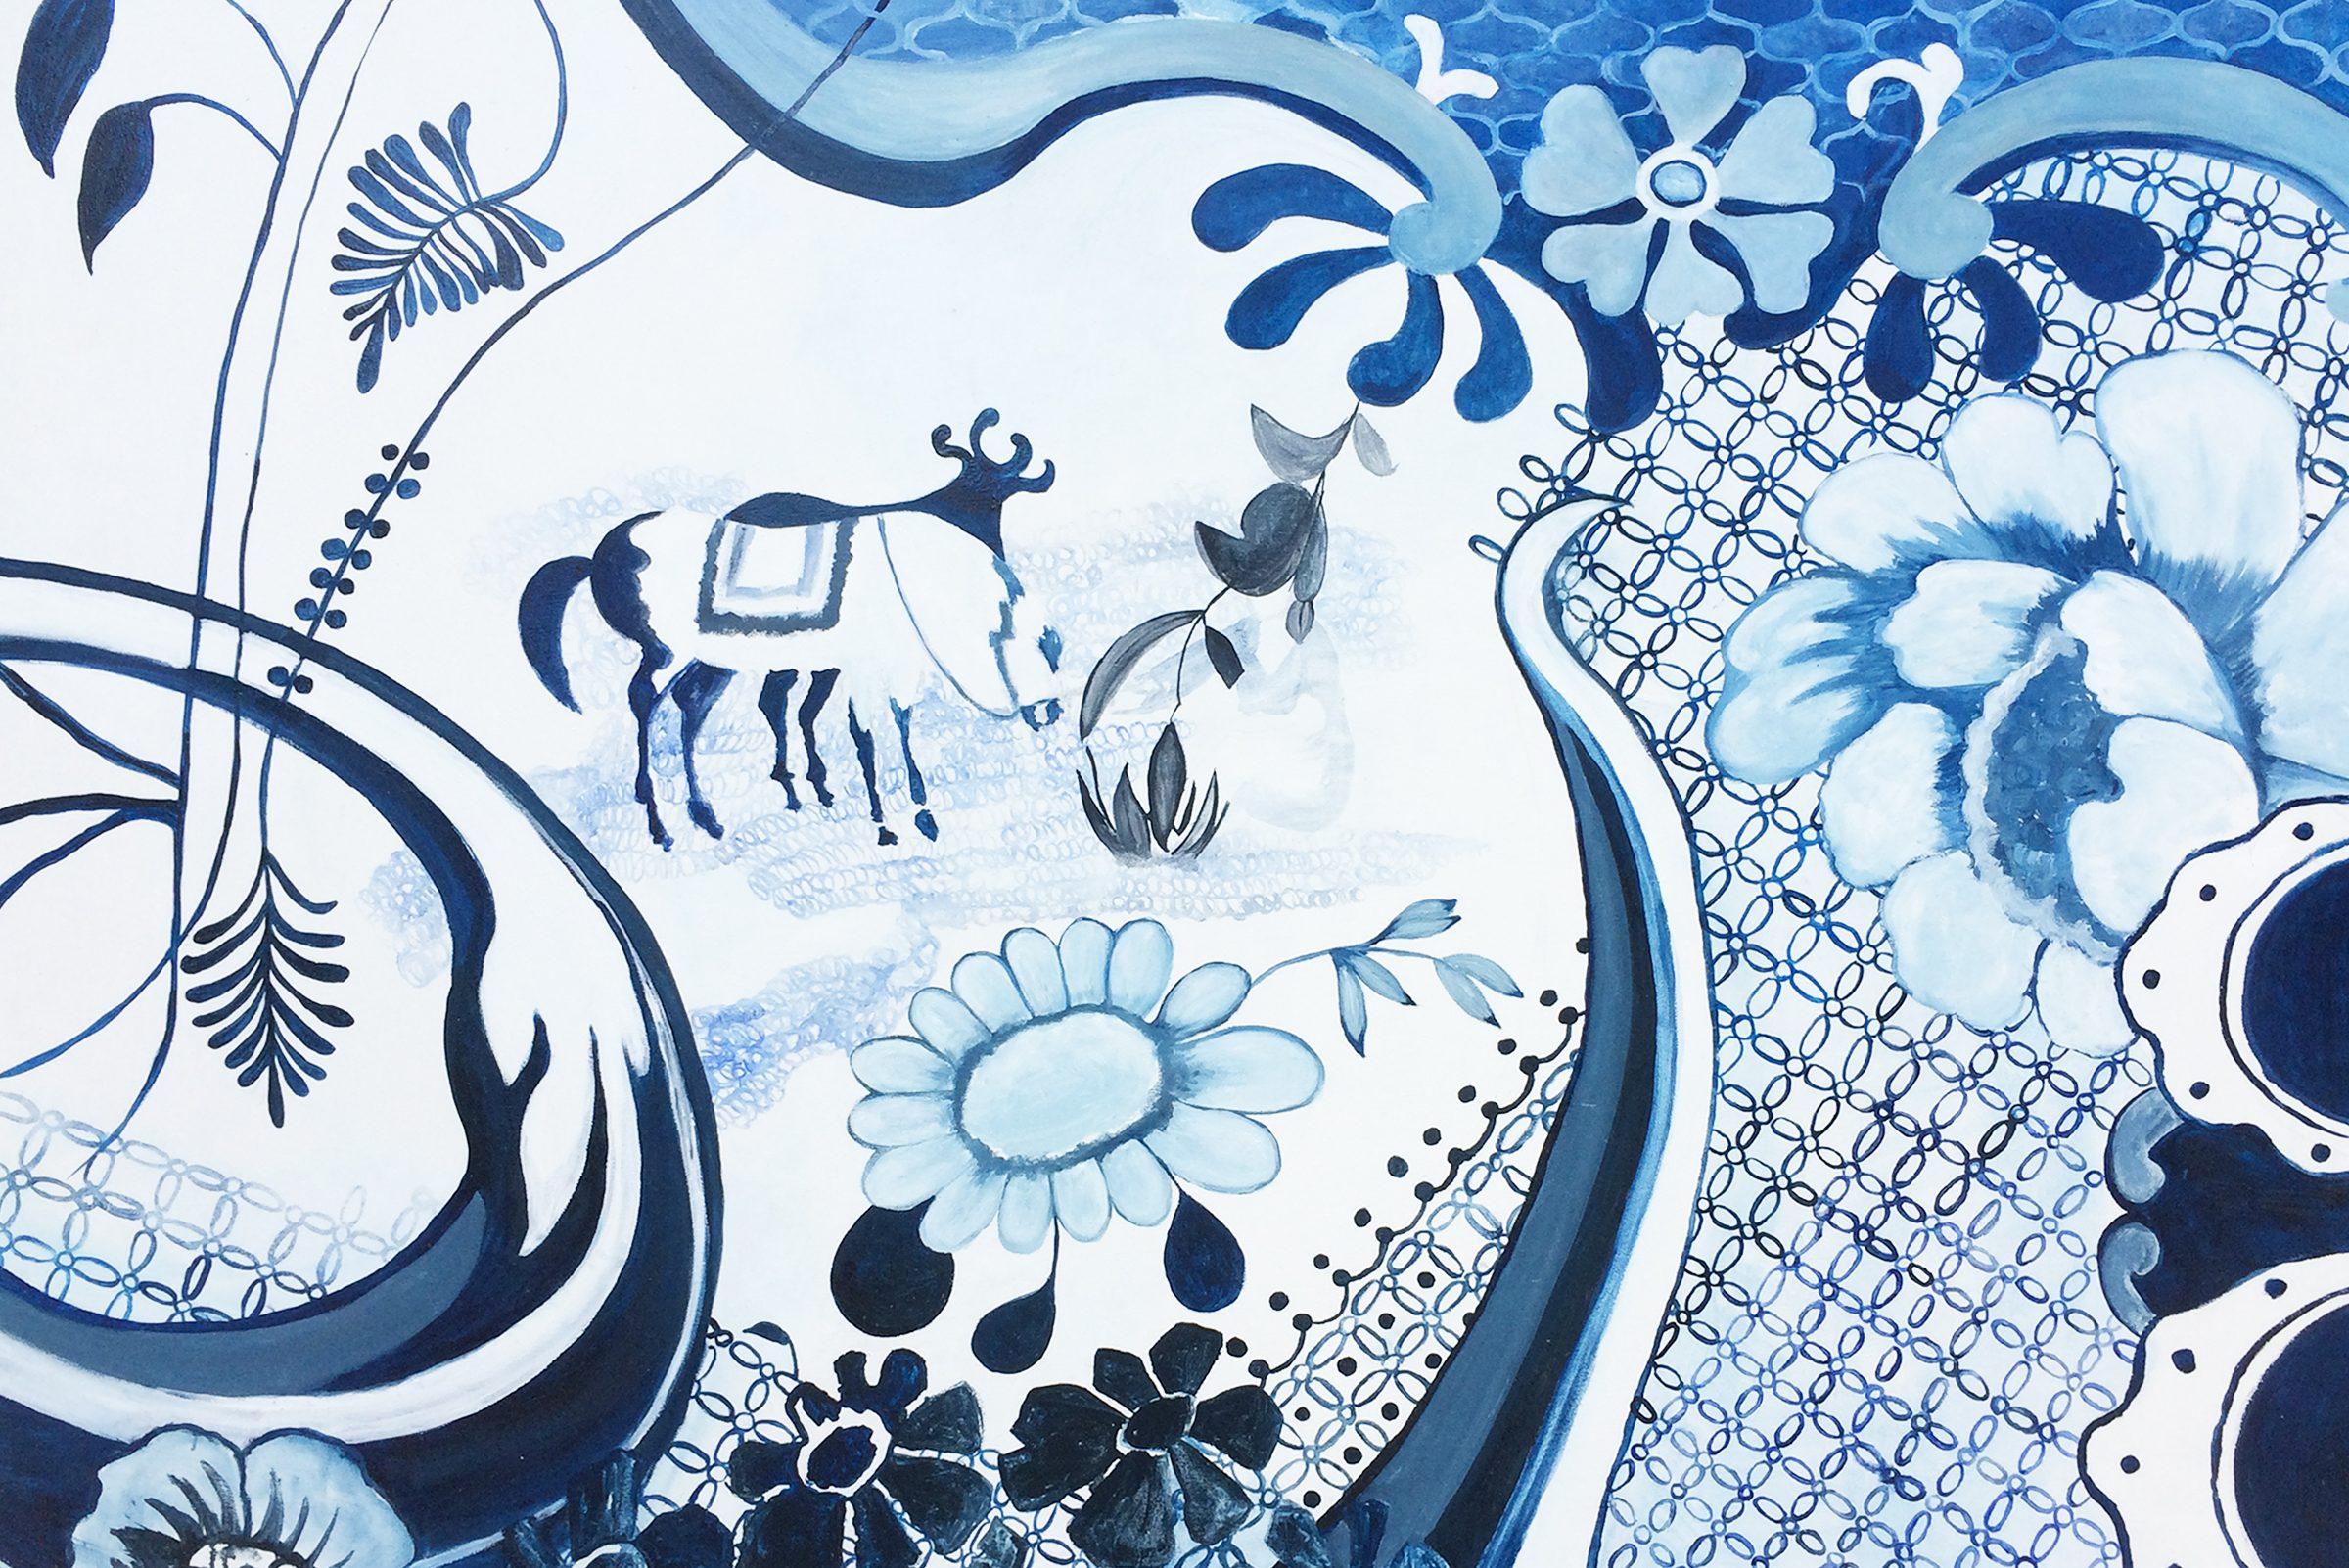 painting featured on colonial era pottery, flushed with various shades of blue, depicts multiple different types of flowers of differing verisimilitude, multiple patterns that overlap and dominate the background of the piece, and, left of center, what seems to be a mammal figure that resembles a cow, an oxen, or perhaps a donkey.